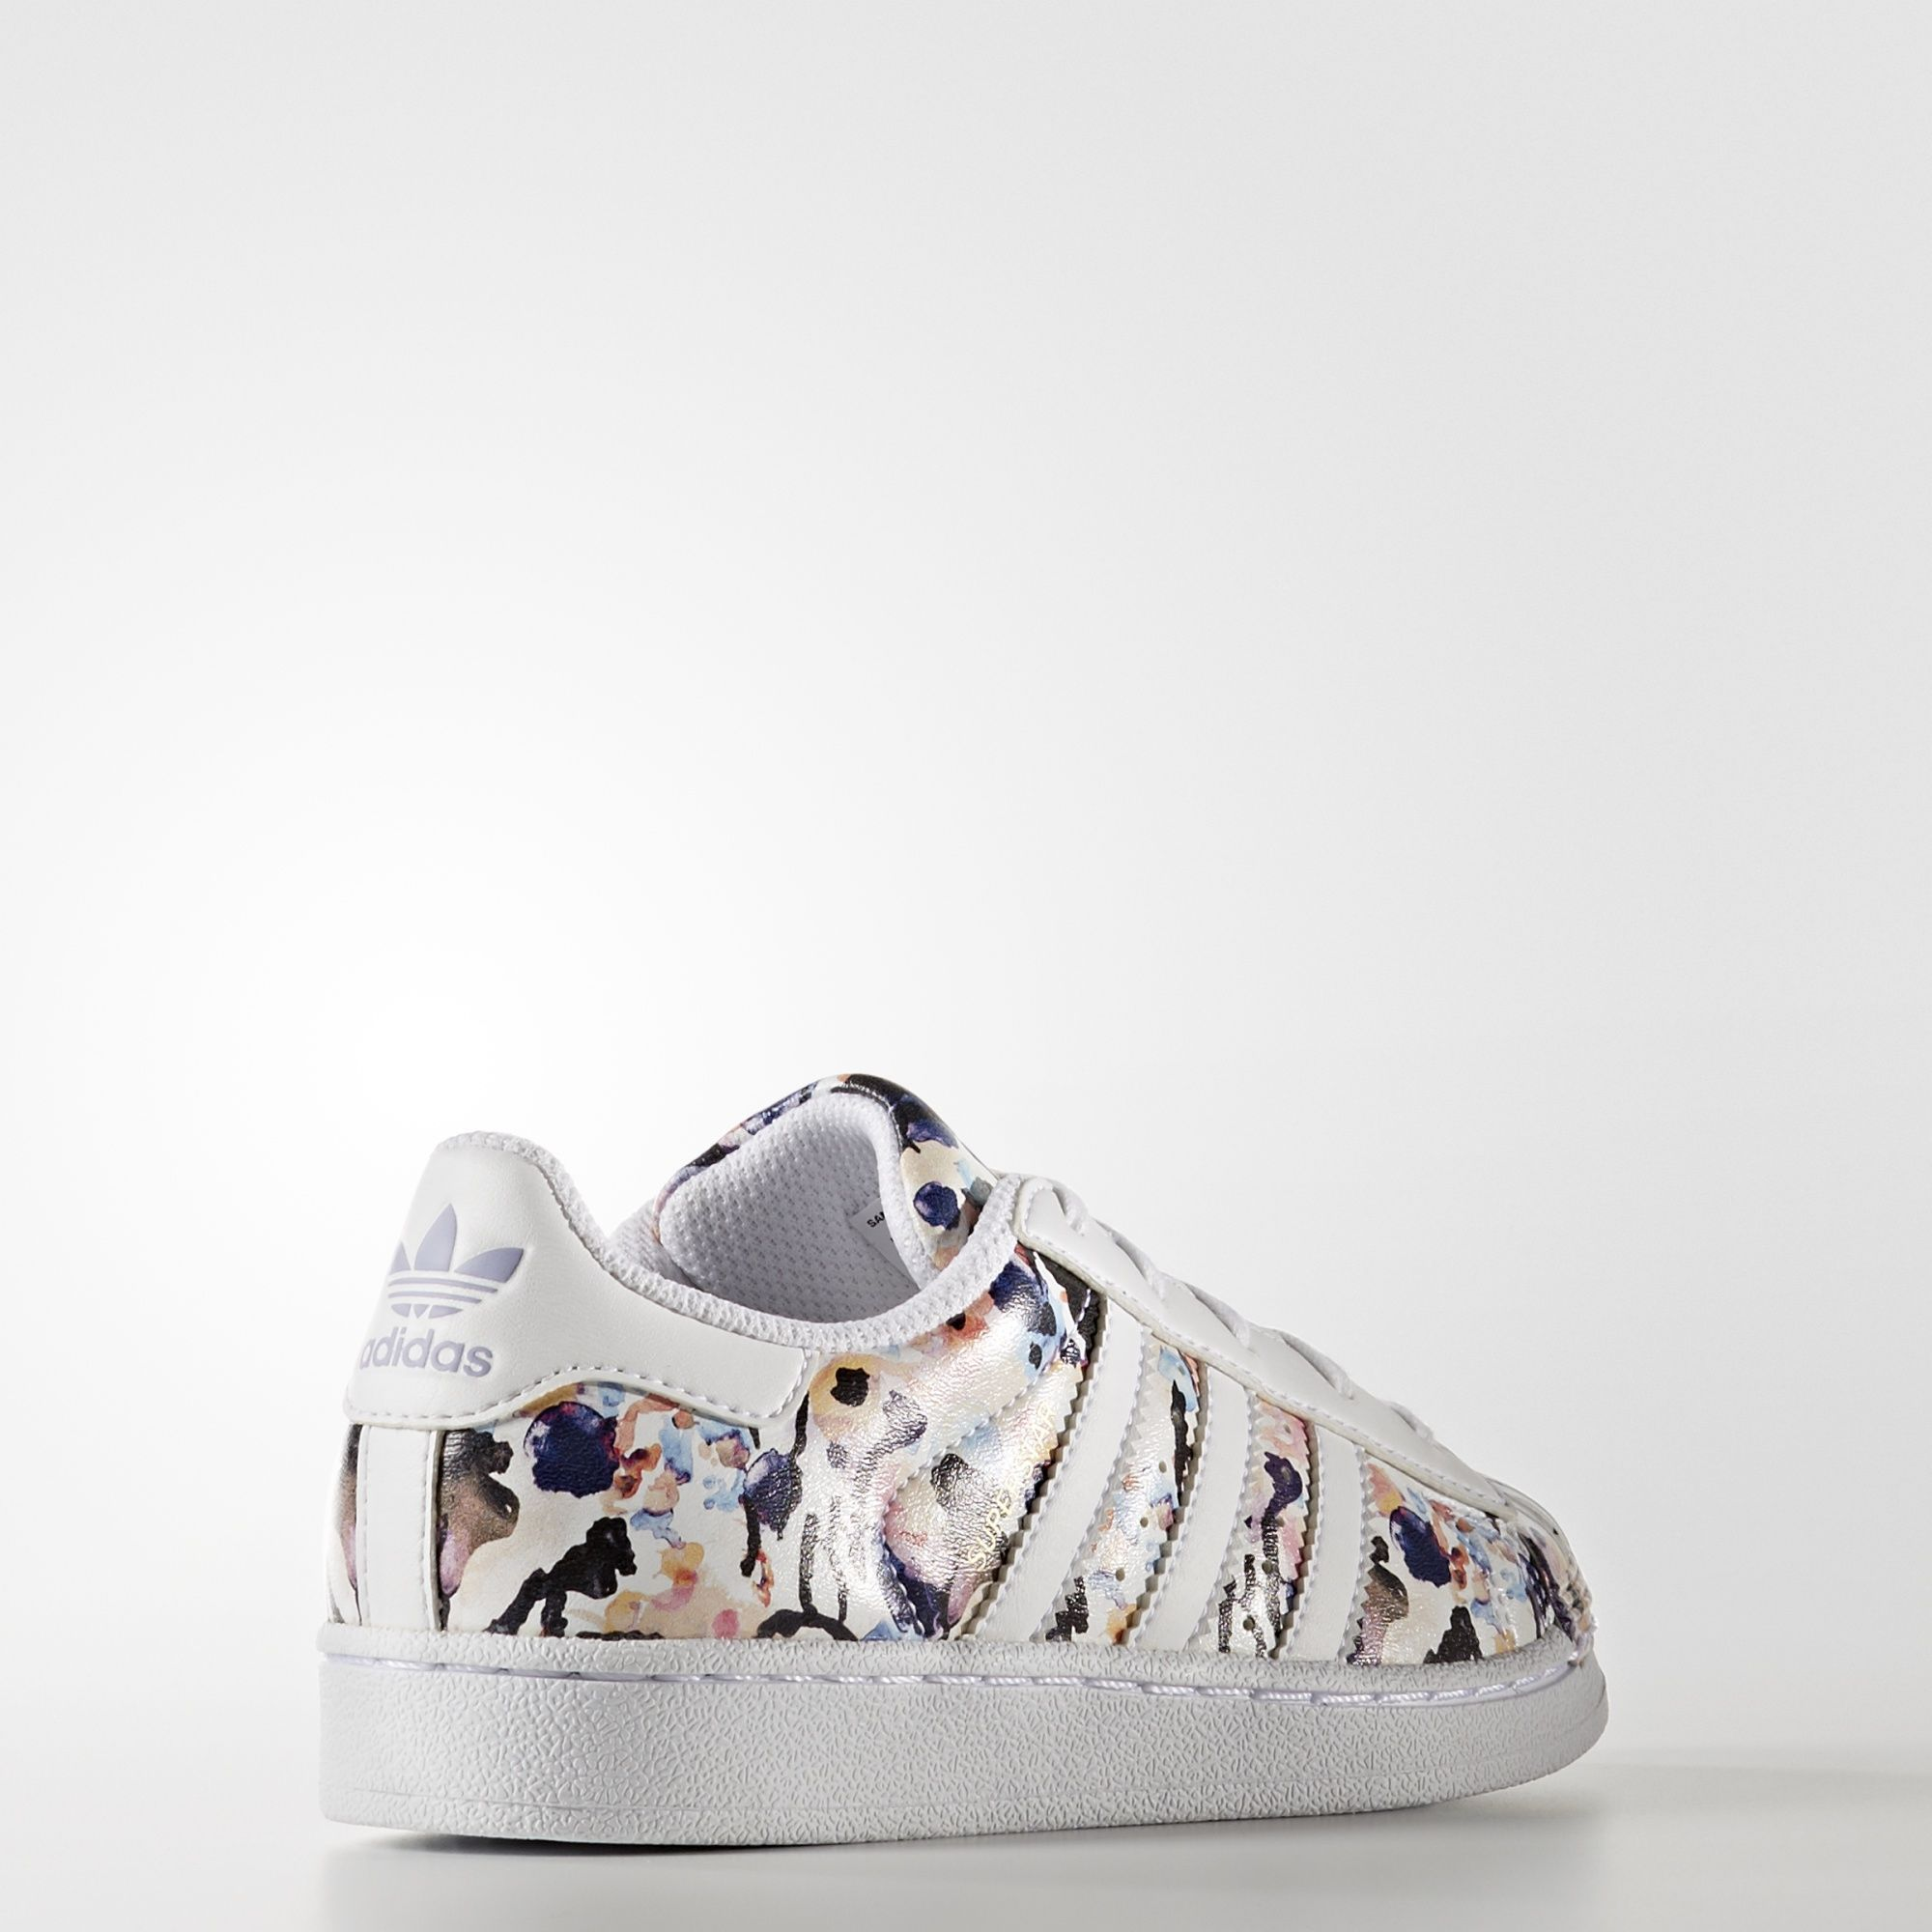 adidas superstar niños foot locker